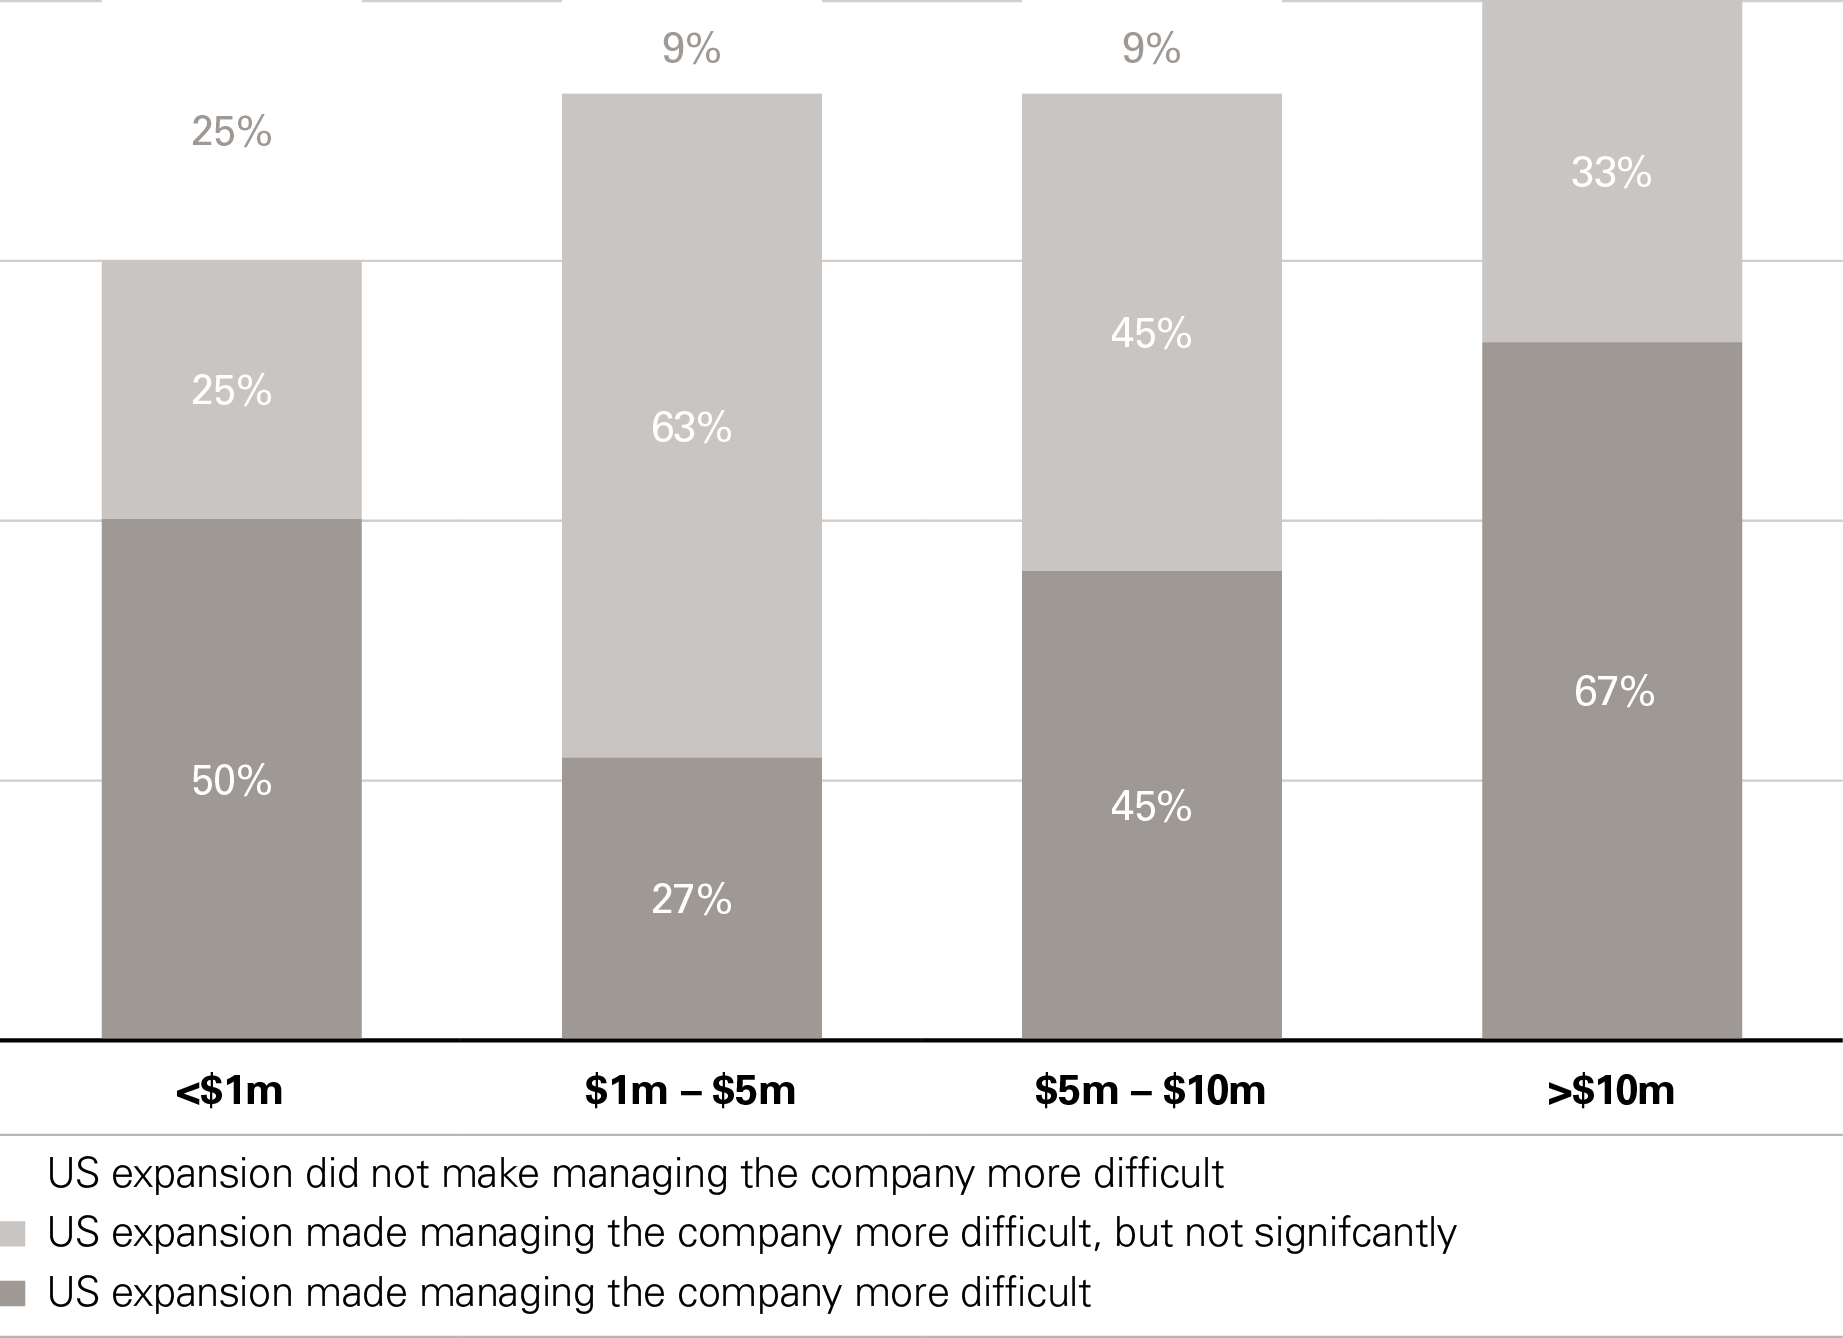 US expansion's impact on difficulty managing the company by funding amount raised prior US expansion